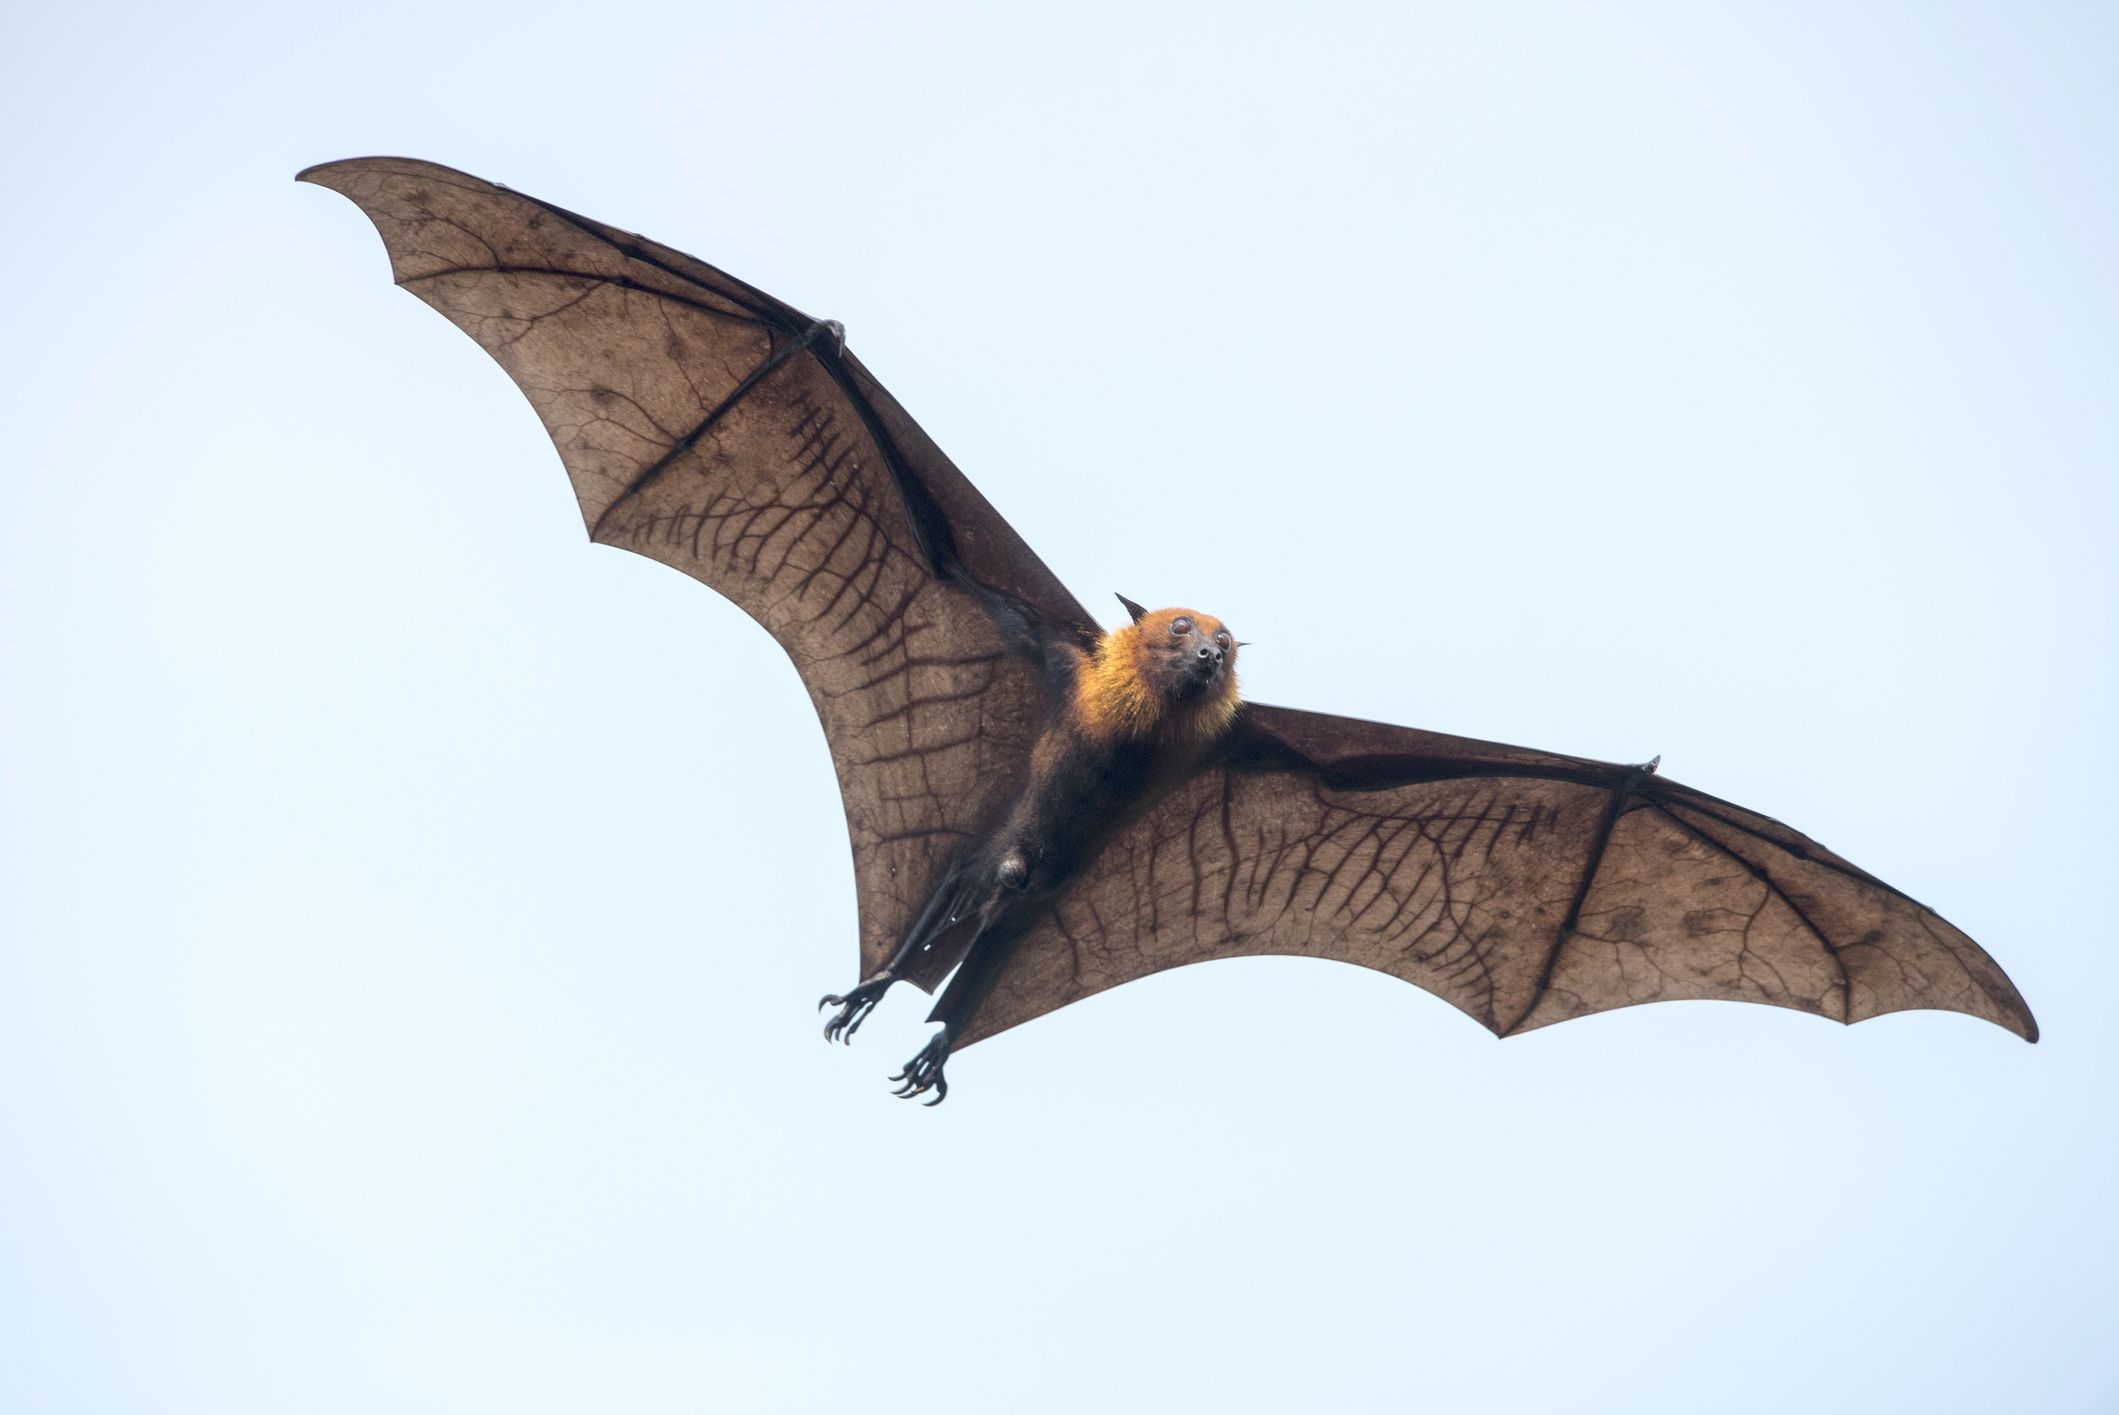 Bats are the only mammals that can fly.